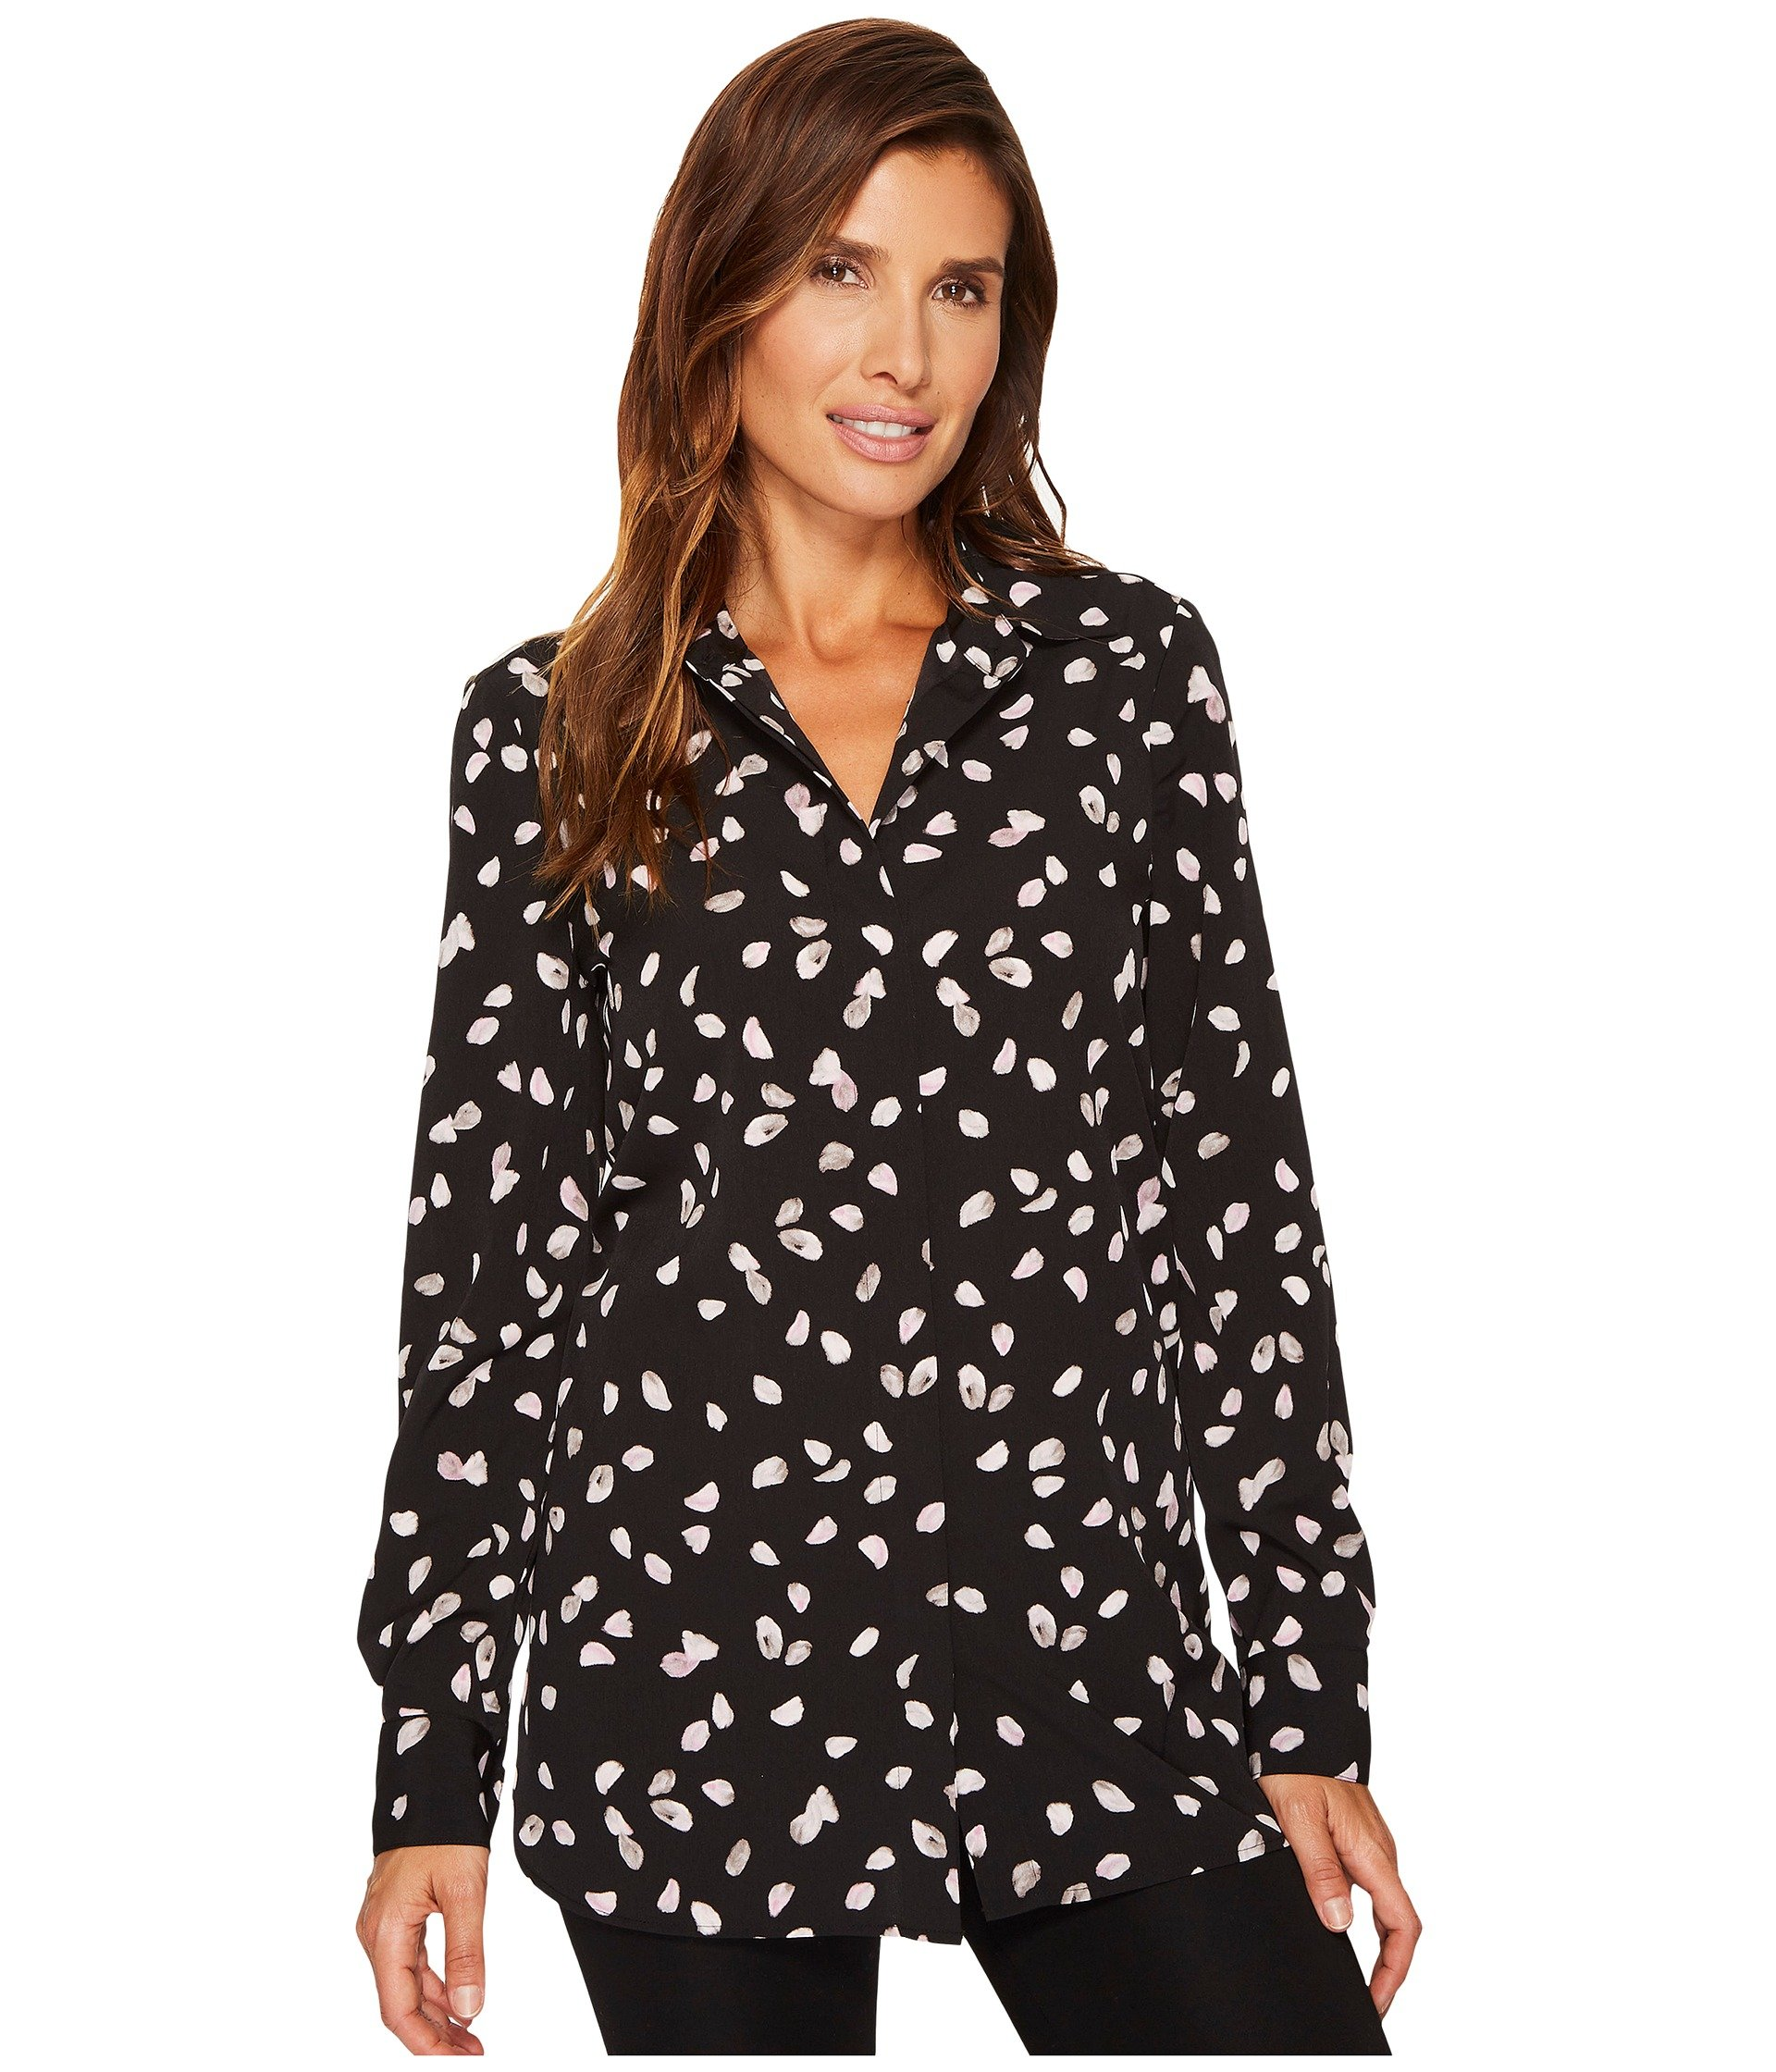 ELLEN TRACY Boyfriend Shirt, Petals E Black